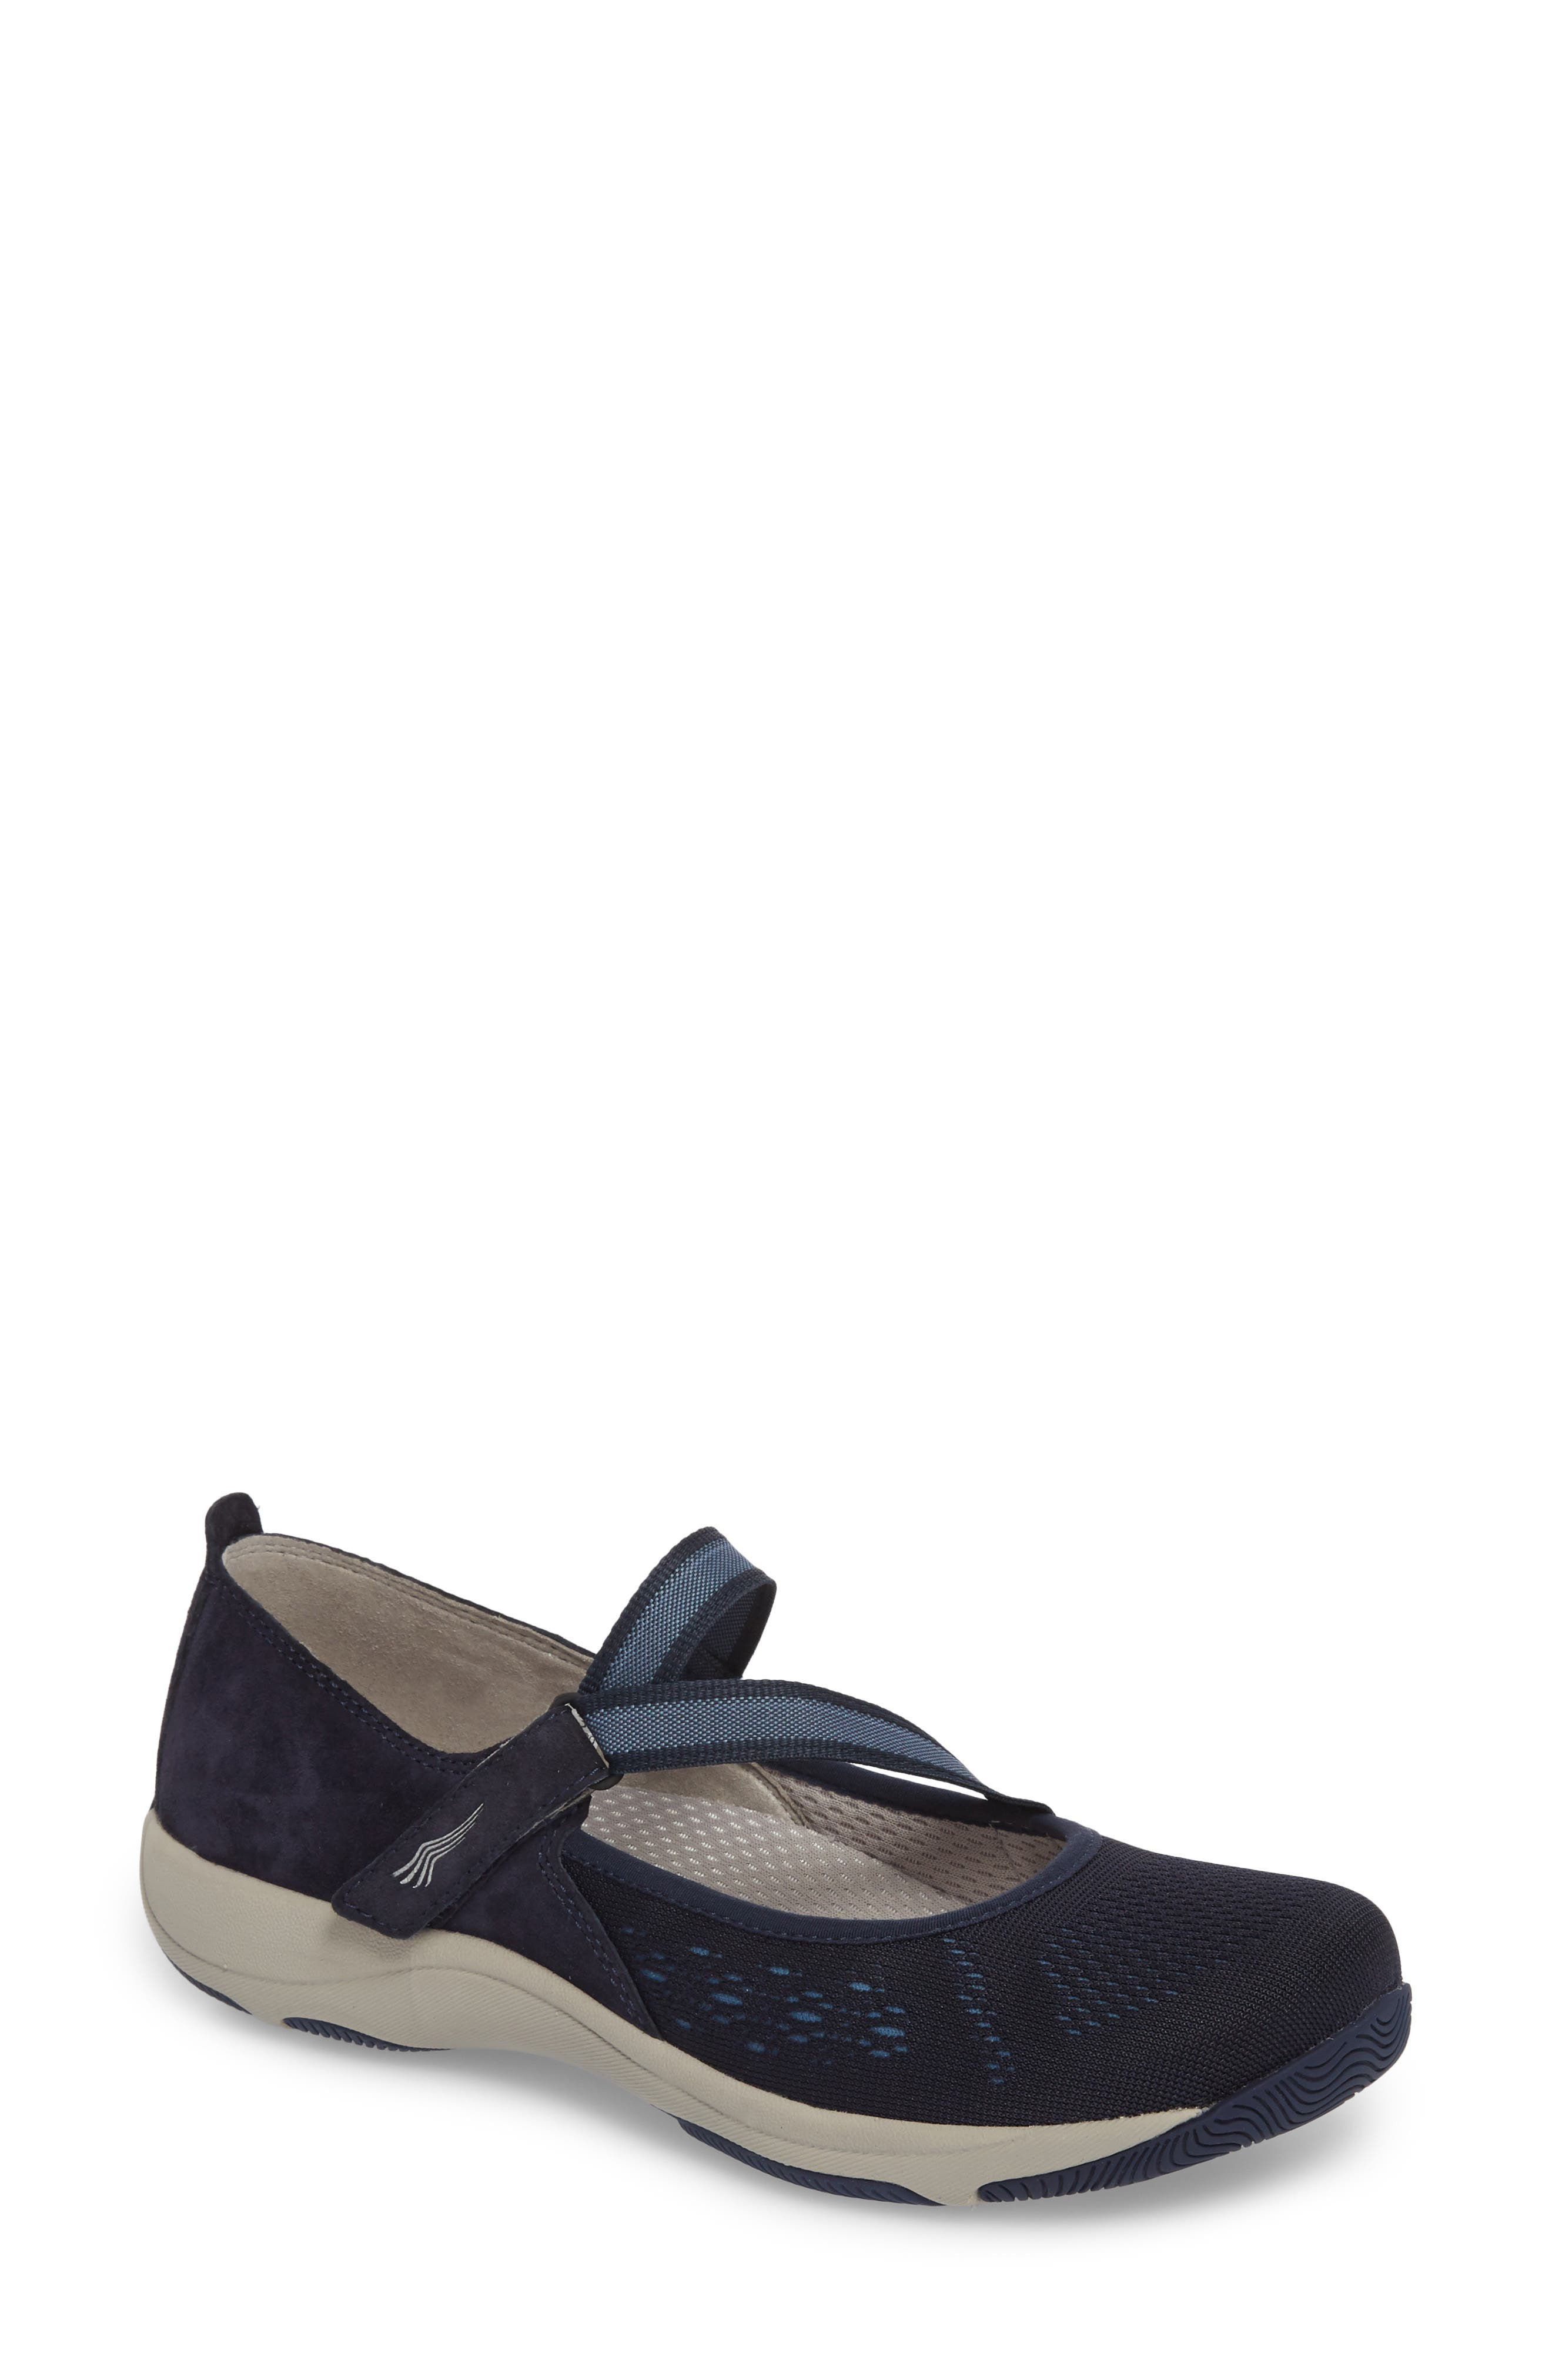 Haven Mary Jane Sneaker,                         Main,                         color, NAVY SUEDE